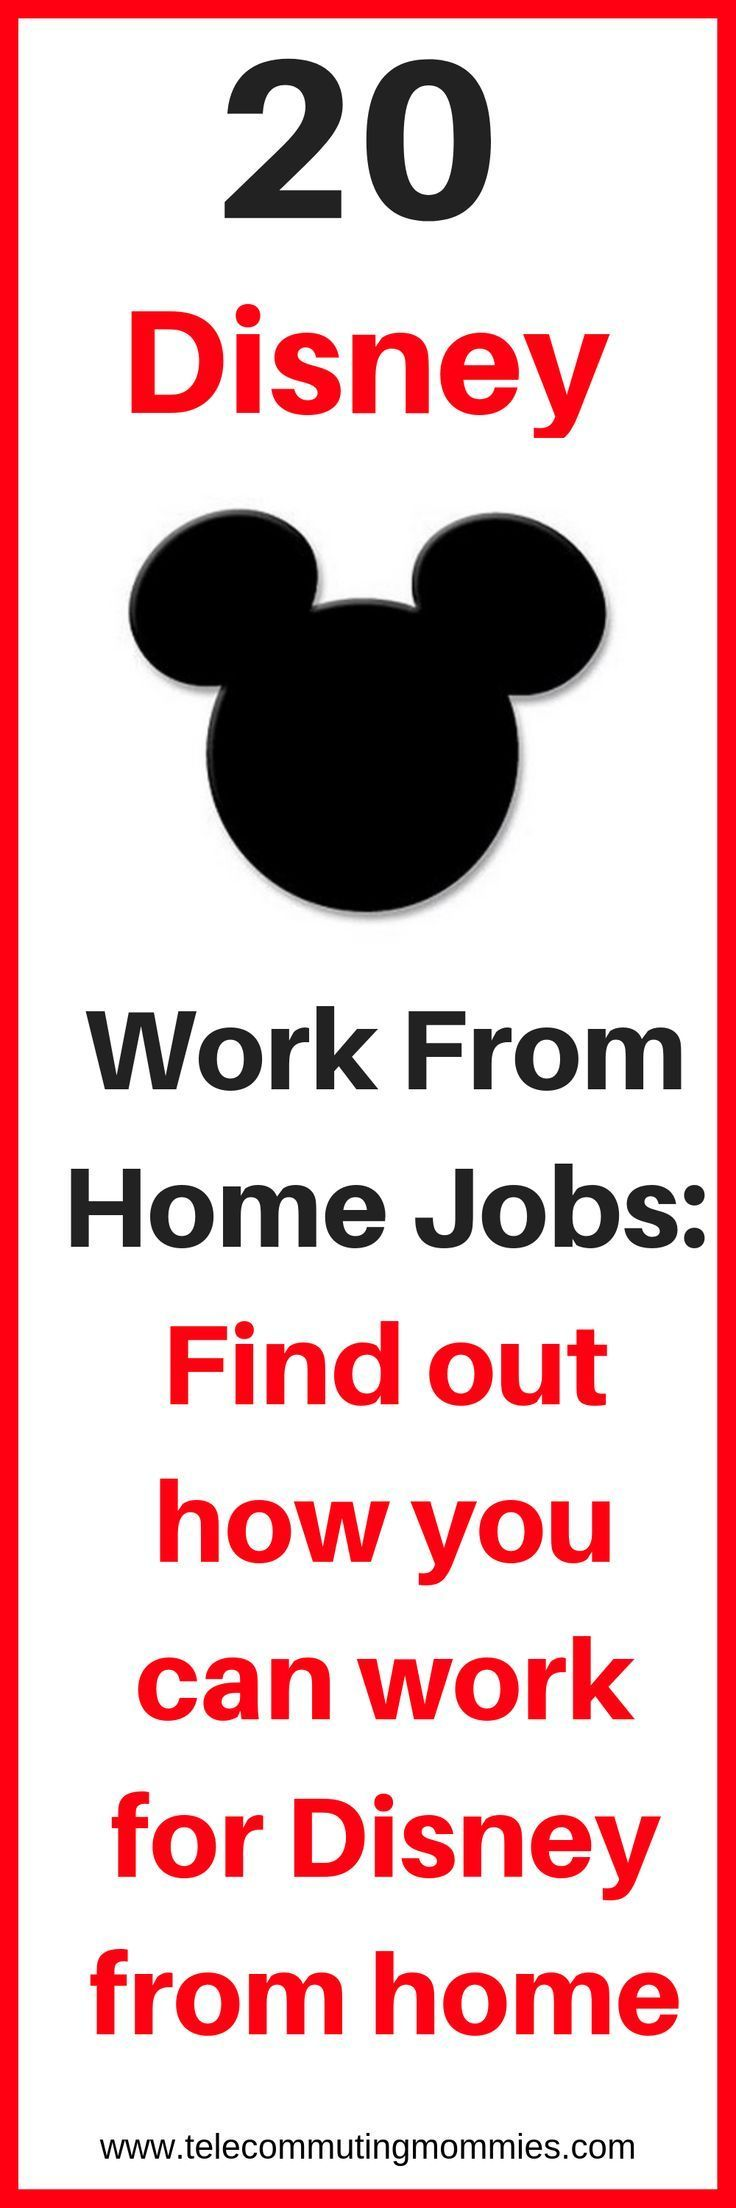 How to Work For Disney From Home: 25 Disney Work From Home Jobs